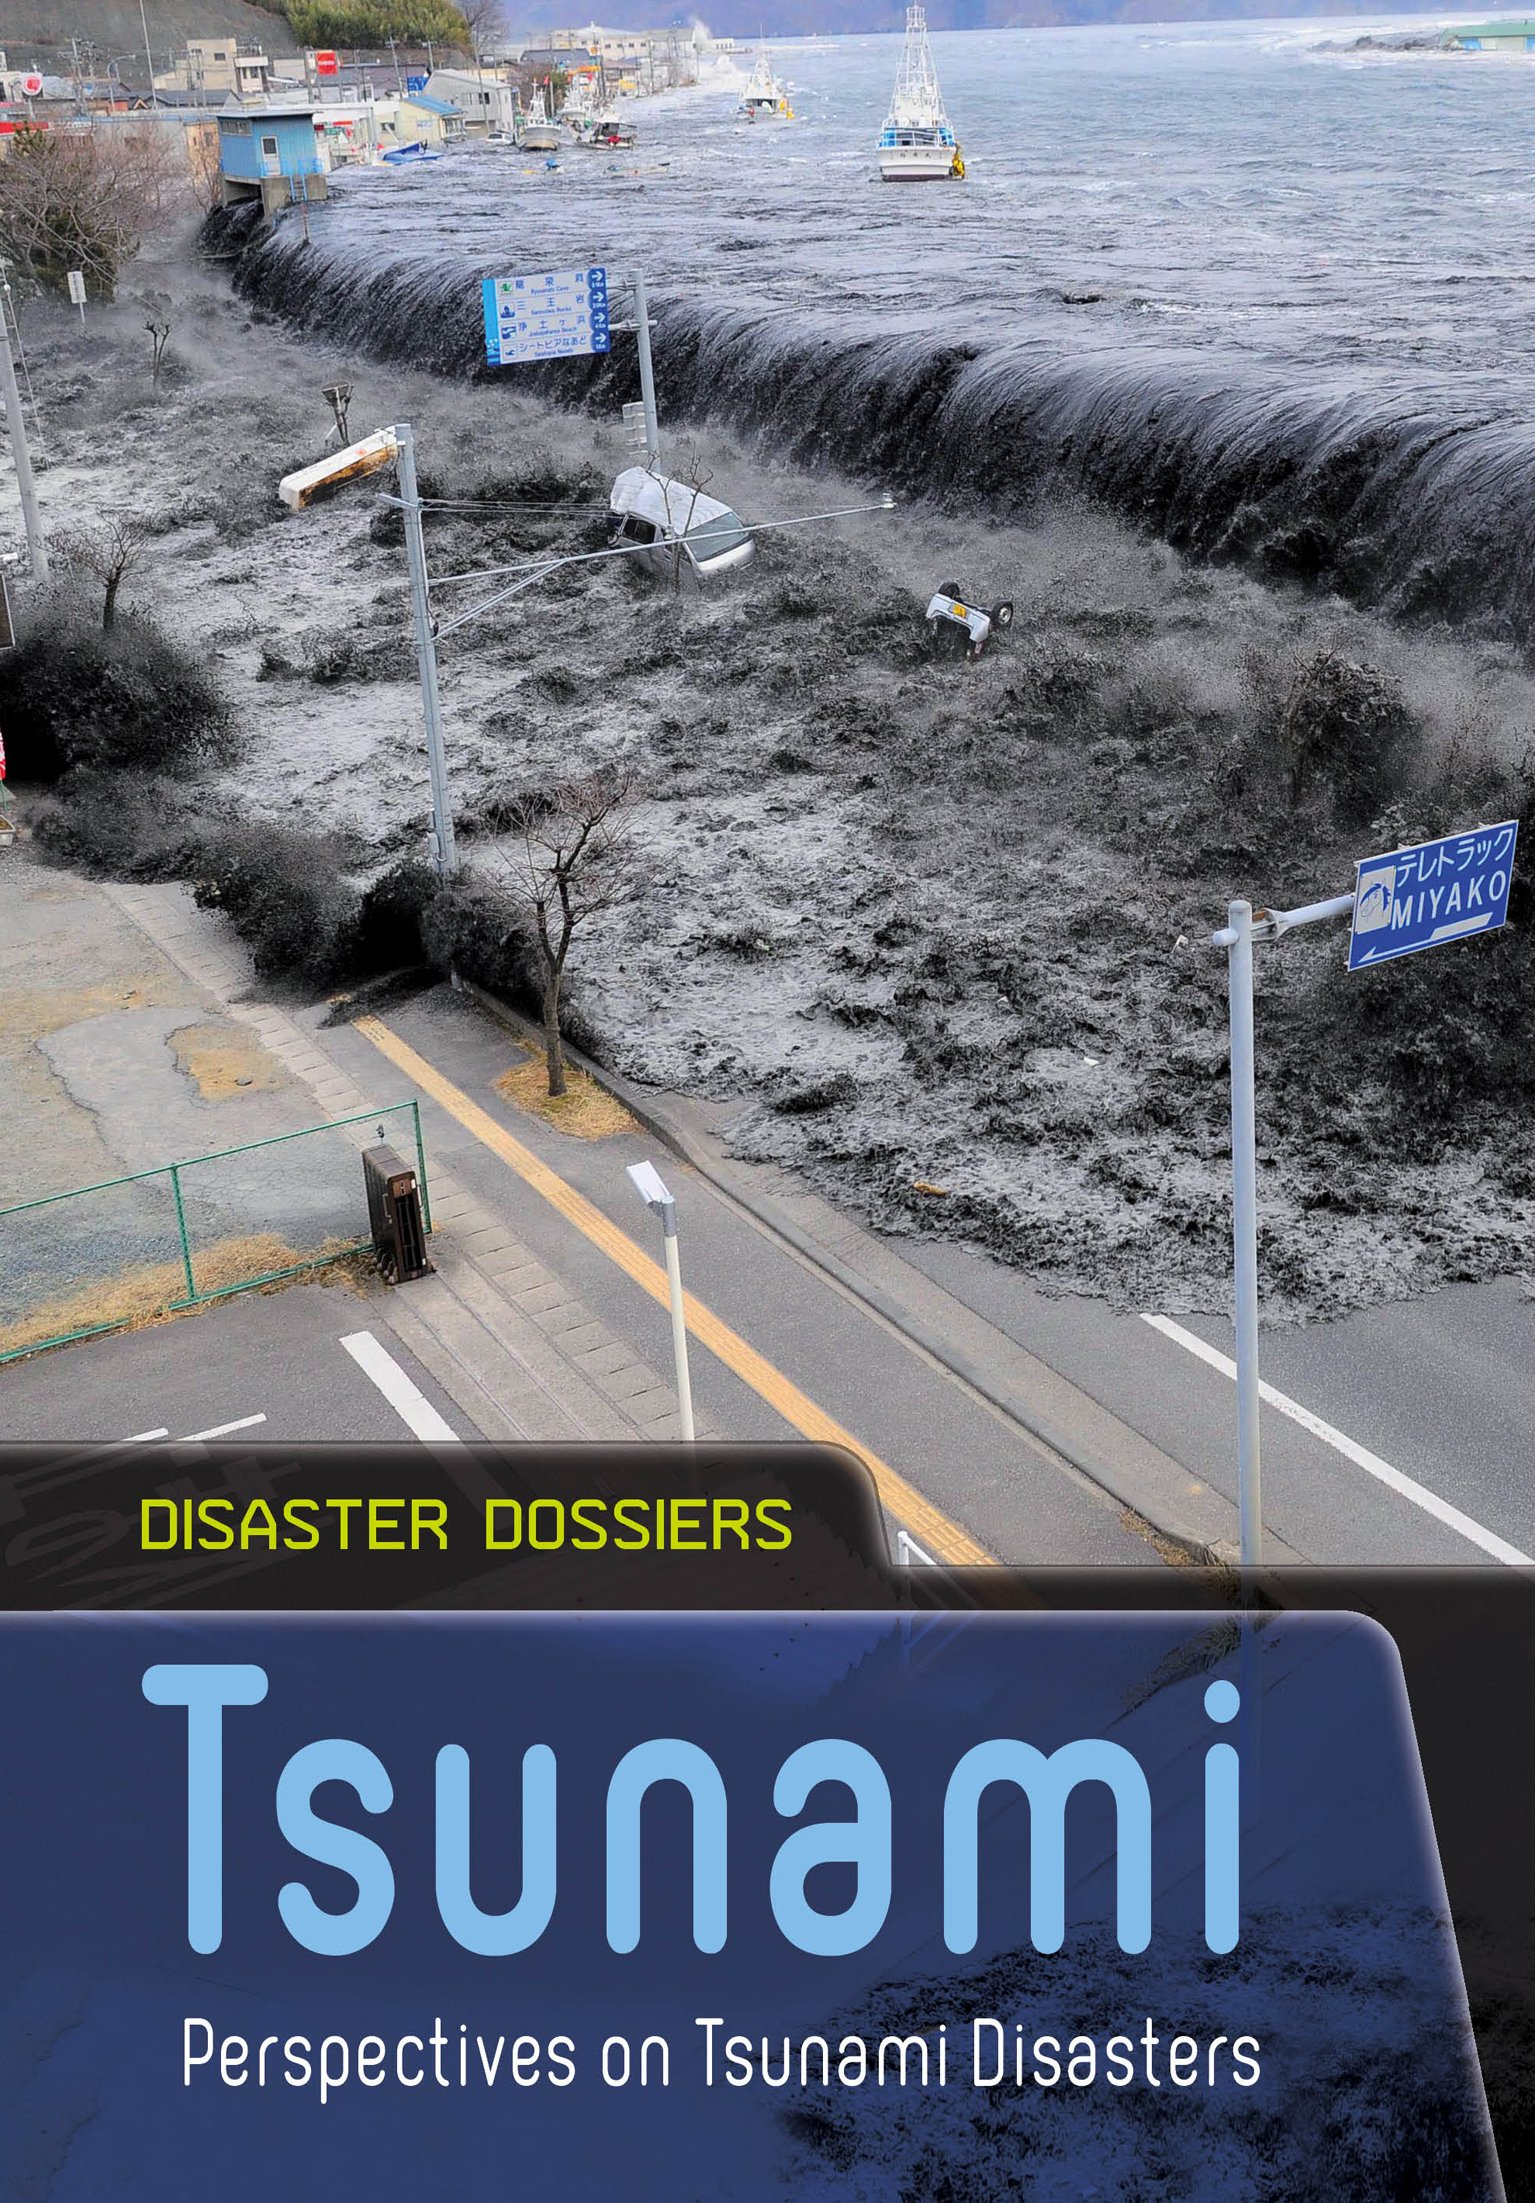 Tsunami: Perspectives on Tsunami Disasters (Disaster Dossiers) ebook